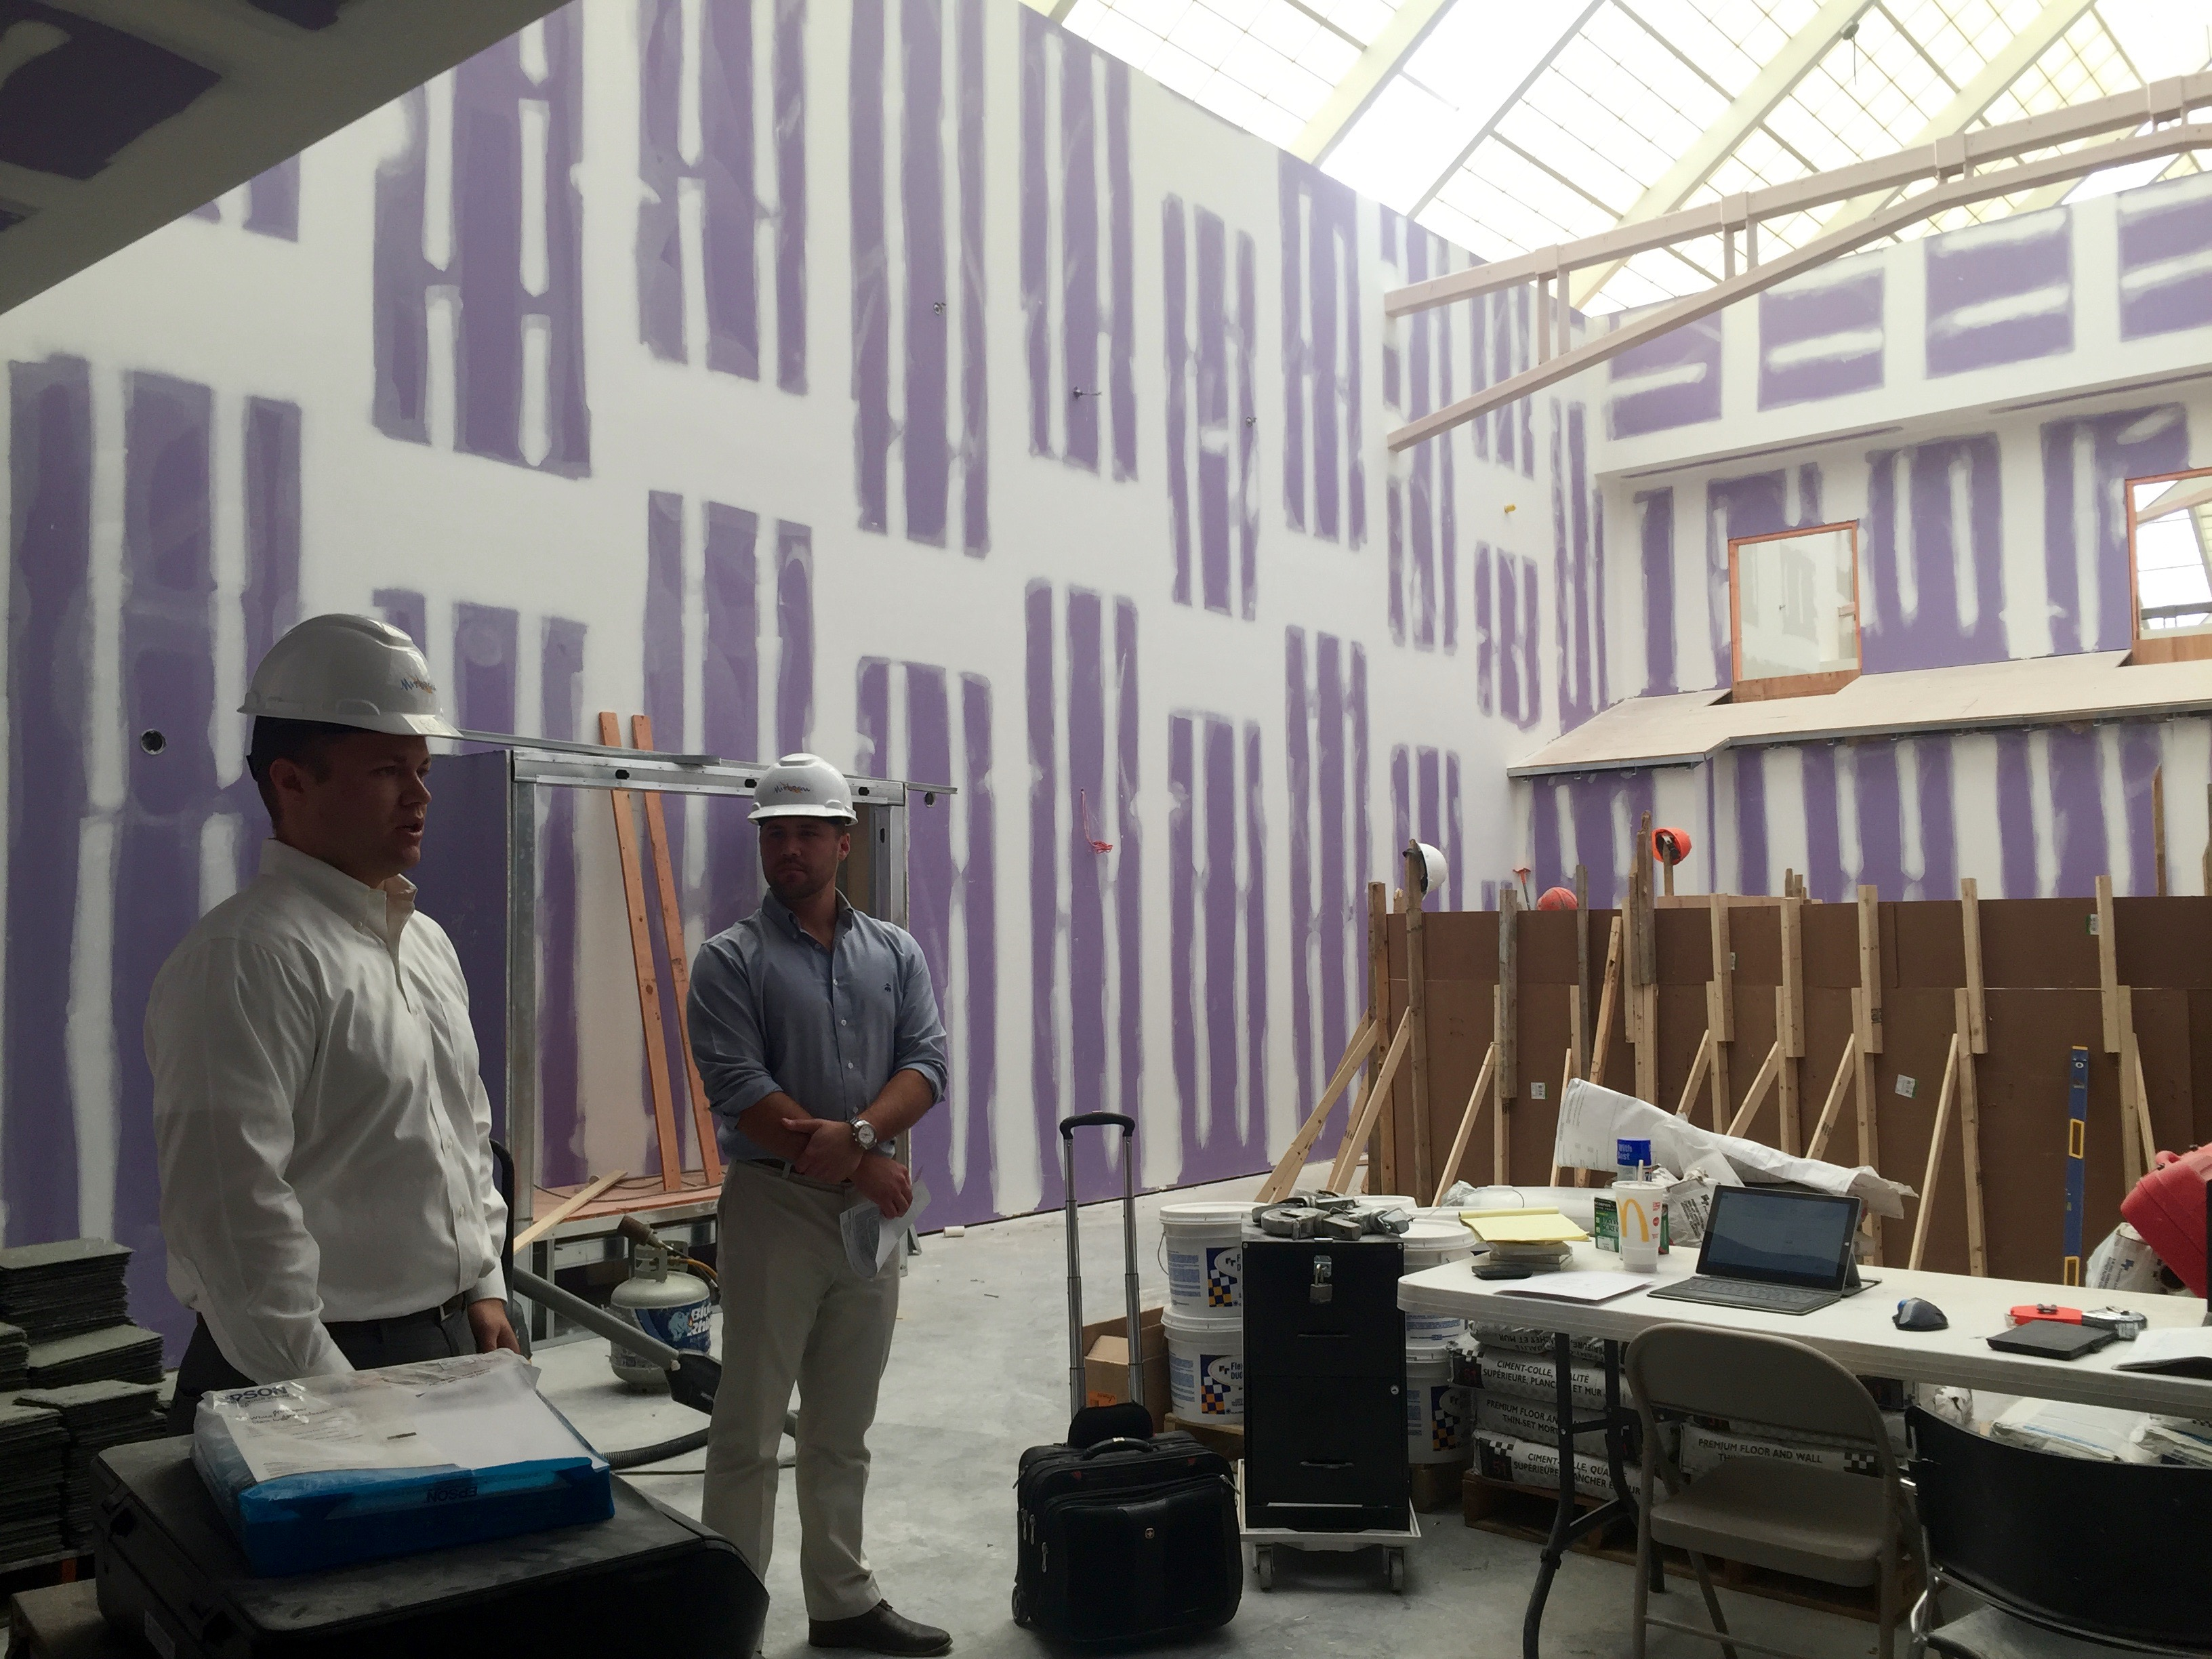 Hard hard hat tour of Spa Mirbeau at Crossgates Mall in Albany